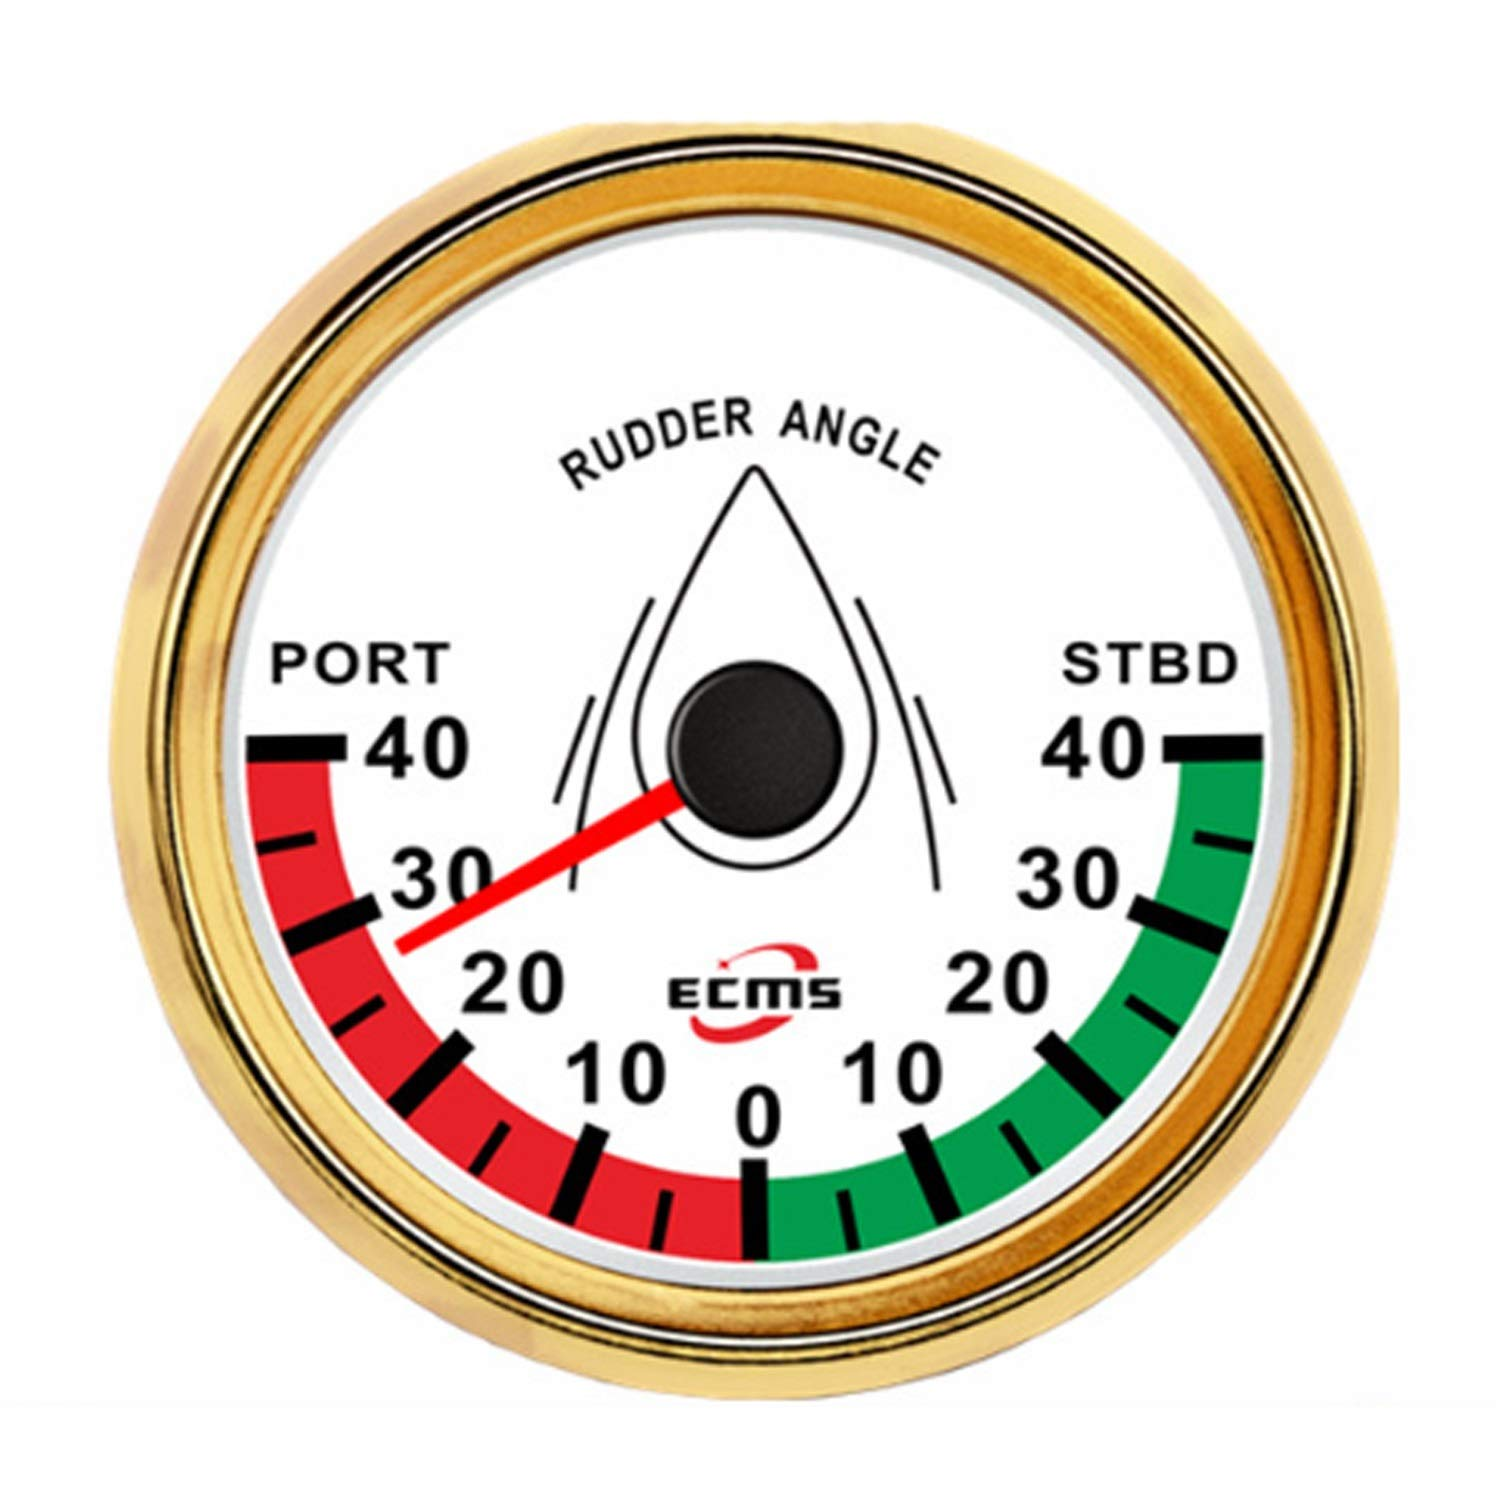 Low Power Consumption Universal Analog Rudder Angle Indicator Gauge Meter Marine Ship Boat Yacht 0-190ohm Signal with Rudder Sensor 85mm (3-3/8''), Waterproof, Lightning-Proof by JUNJIAGAO-gauge